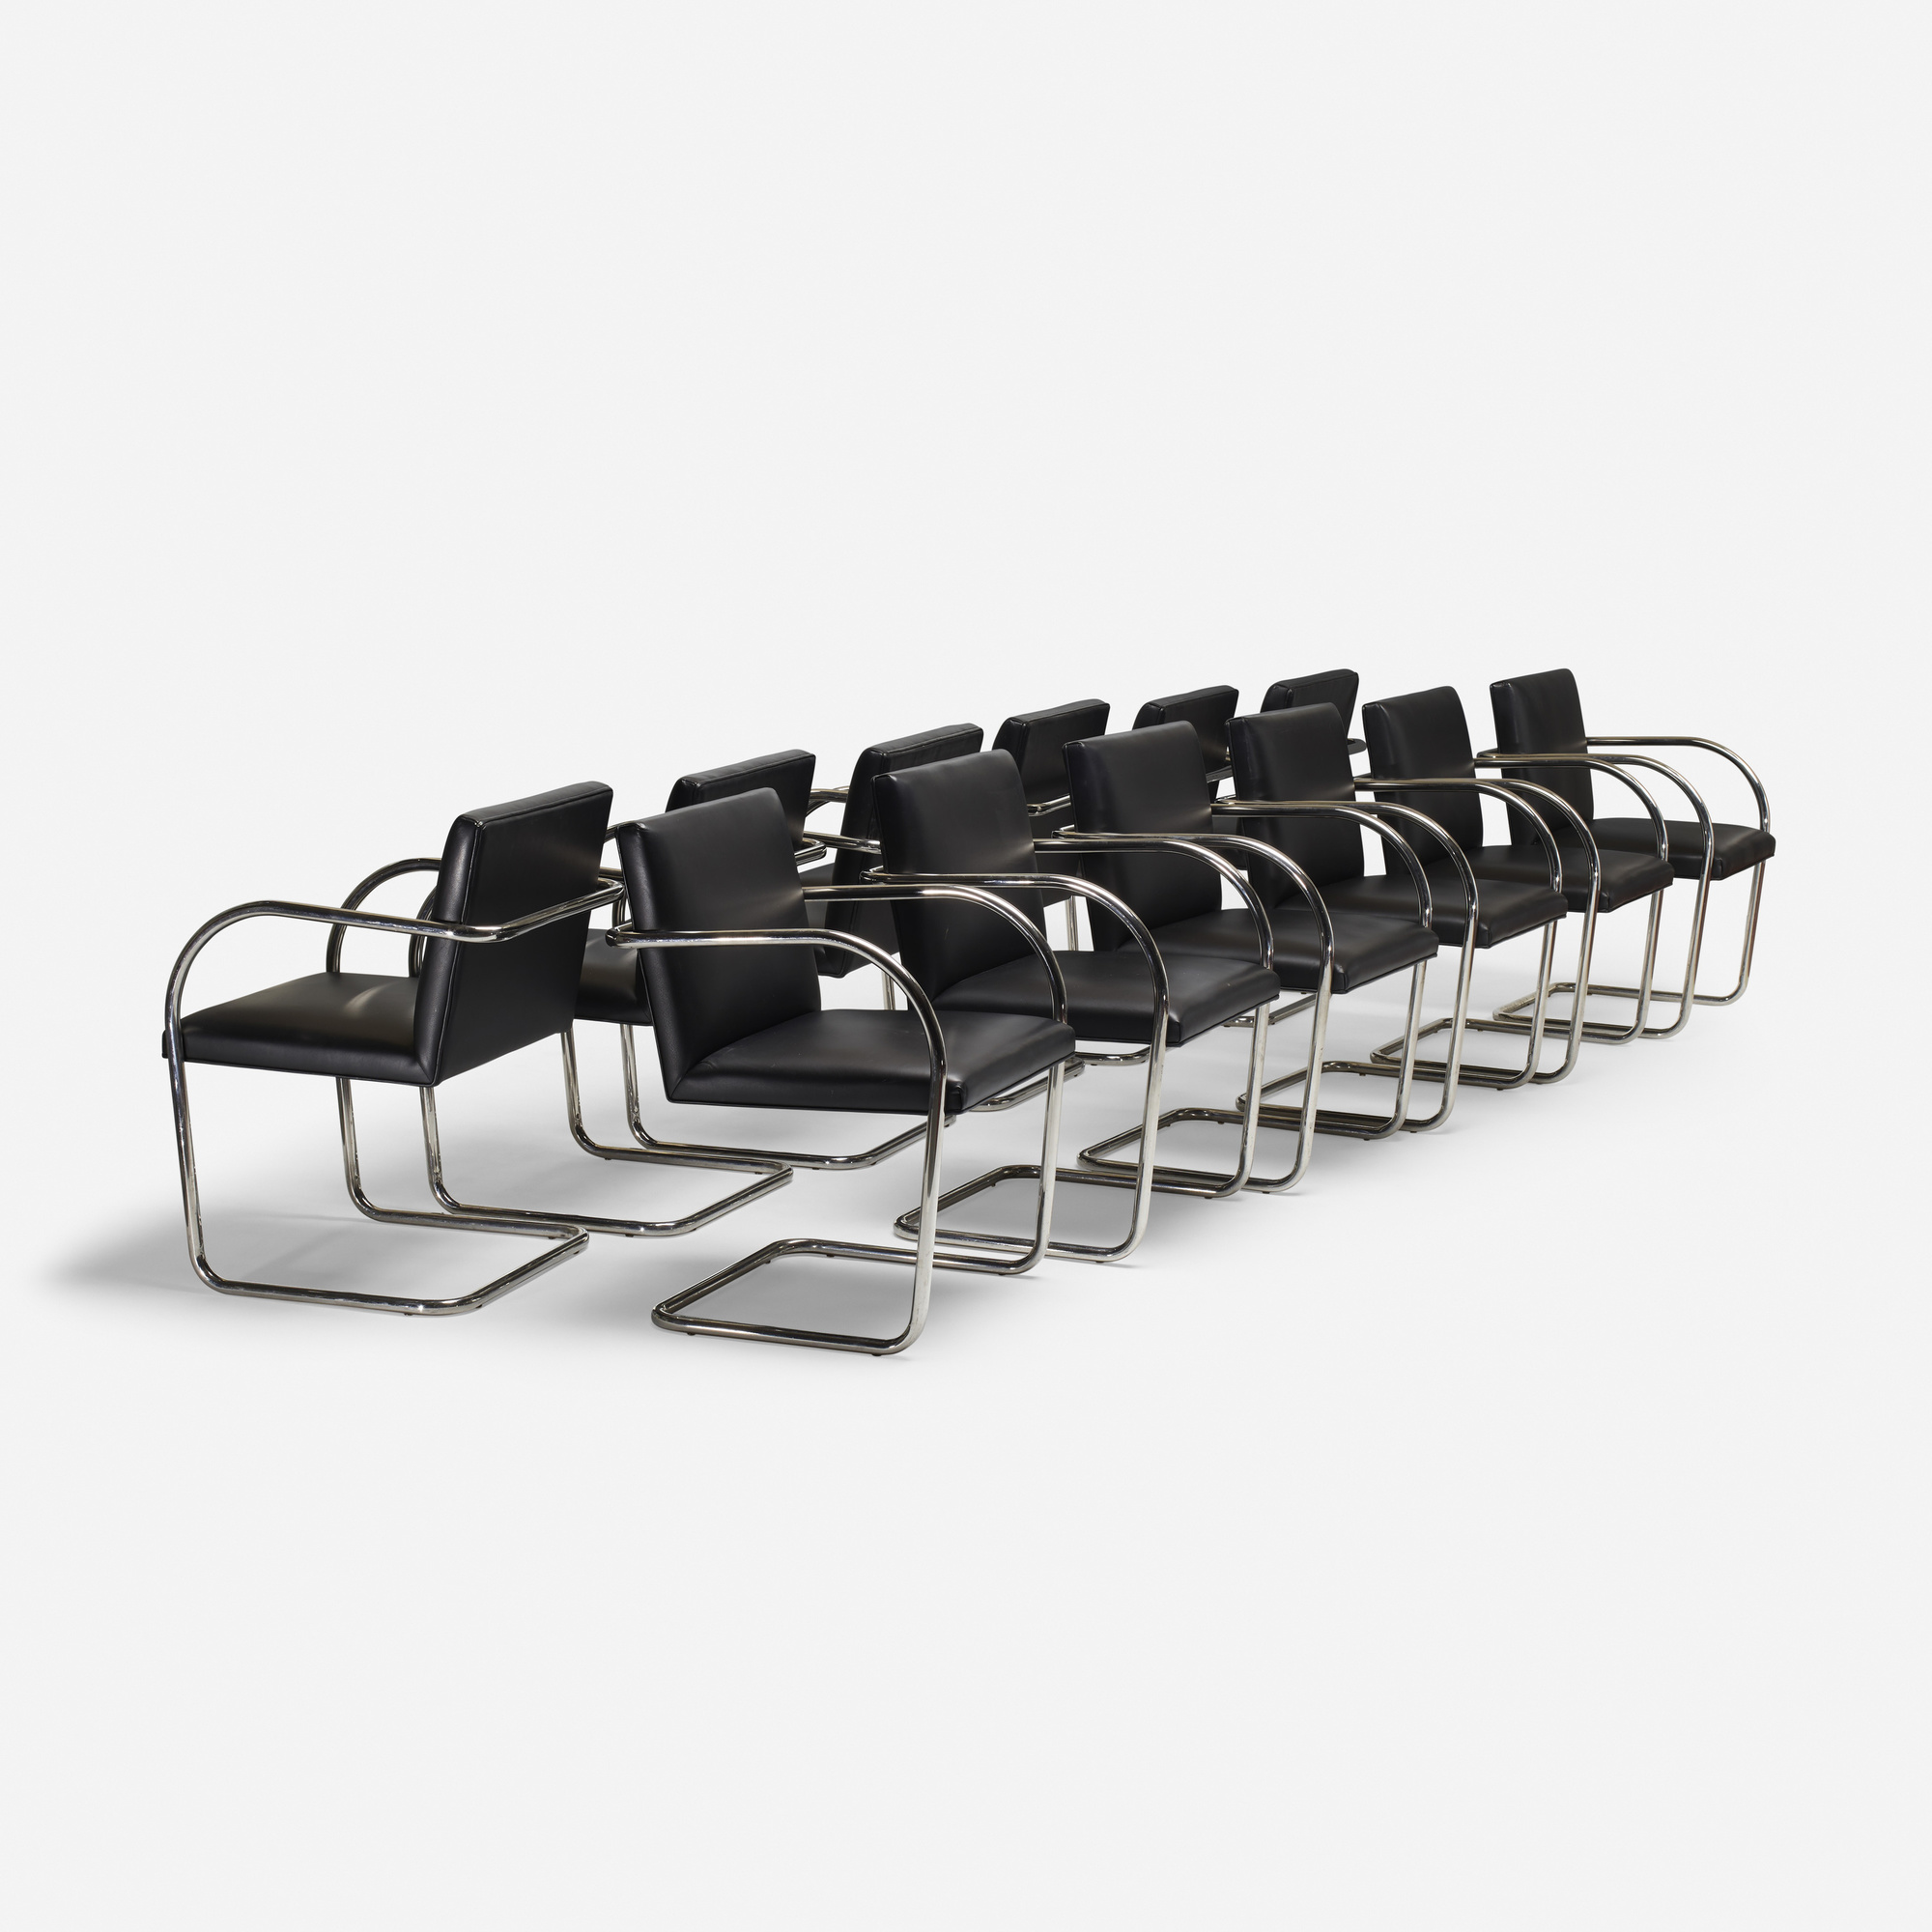 238: Ludwig Mies van der Rohe / set of twelve Brno chairs from The Arts Club of Chicago (1 of 4)